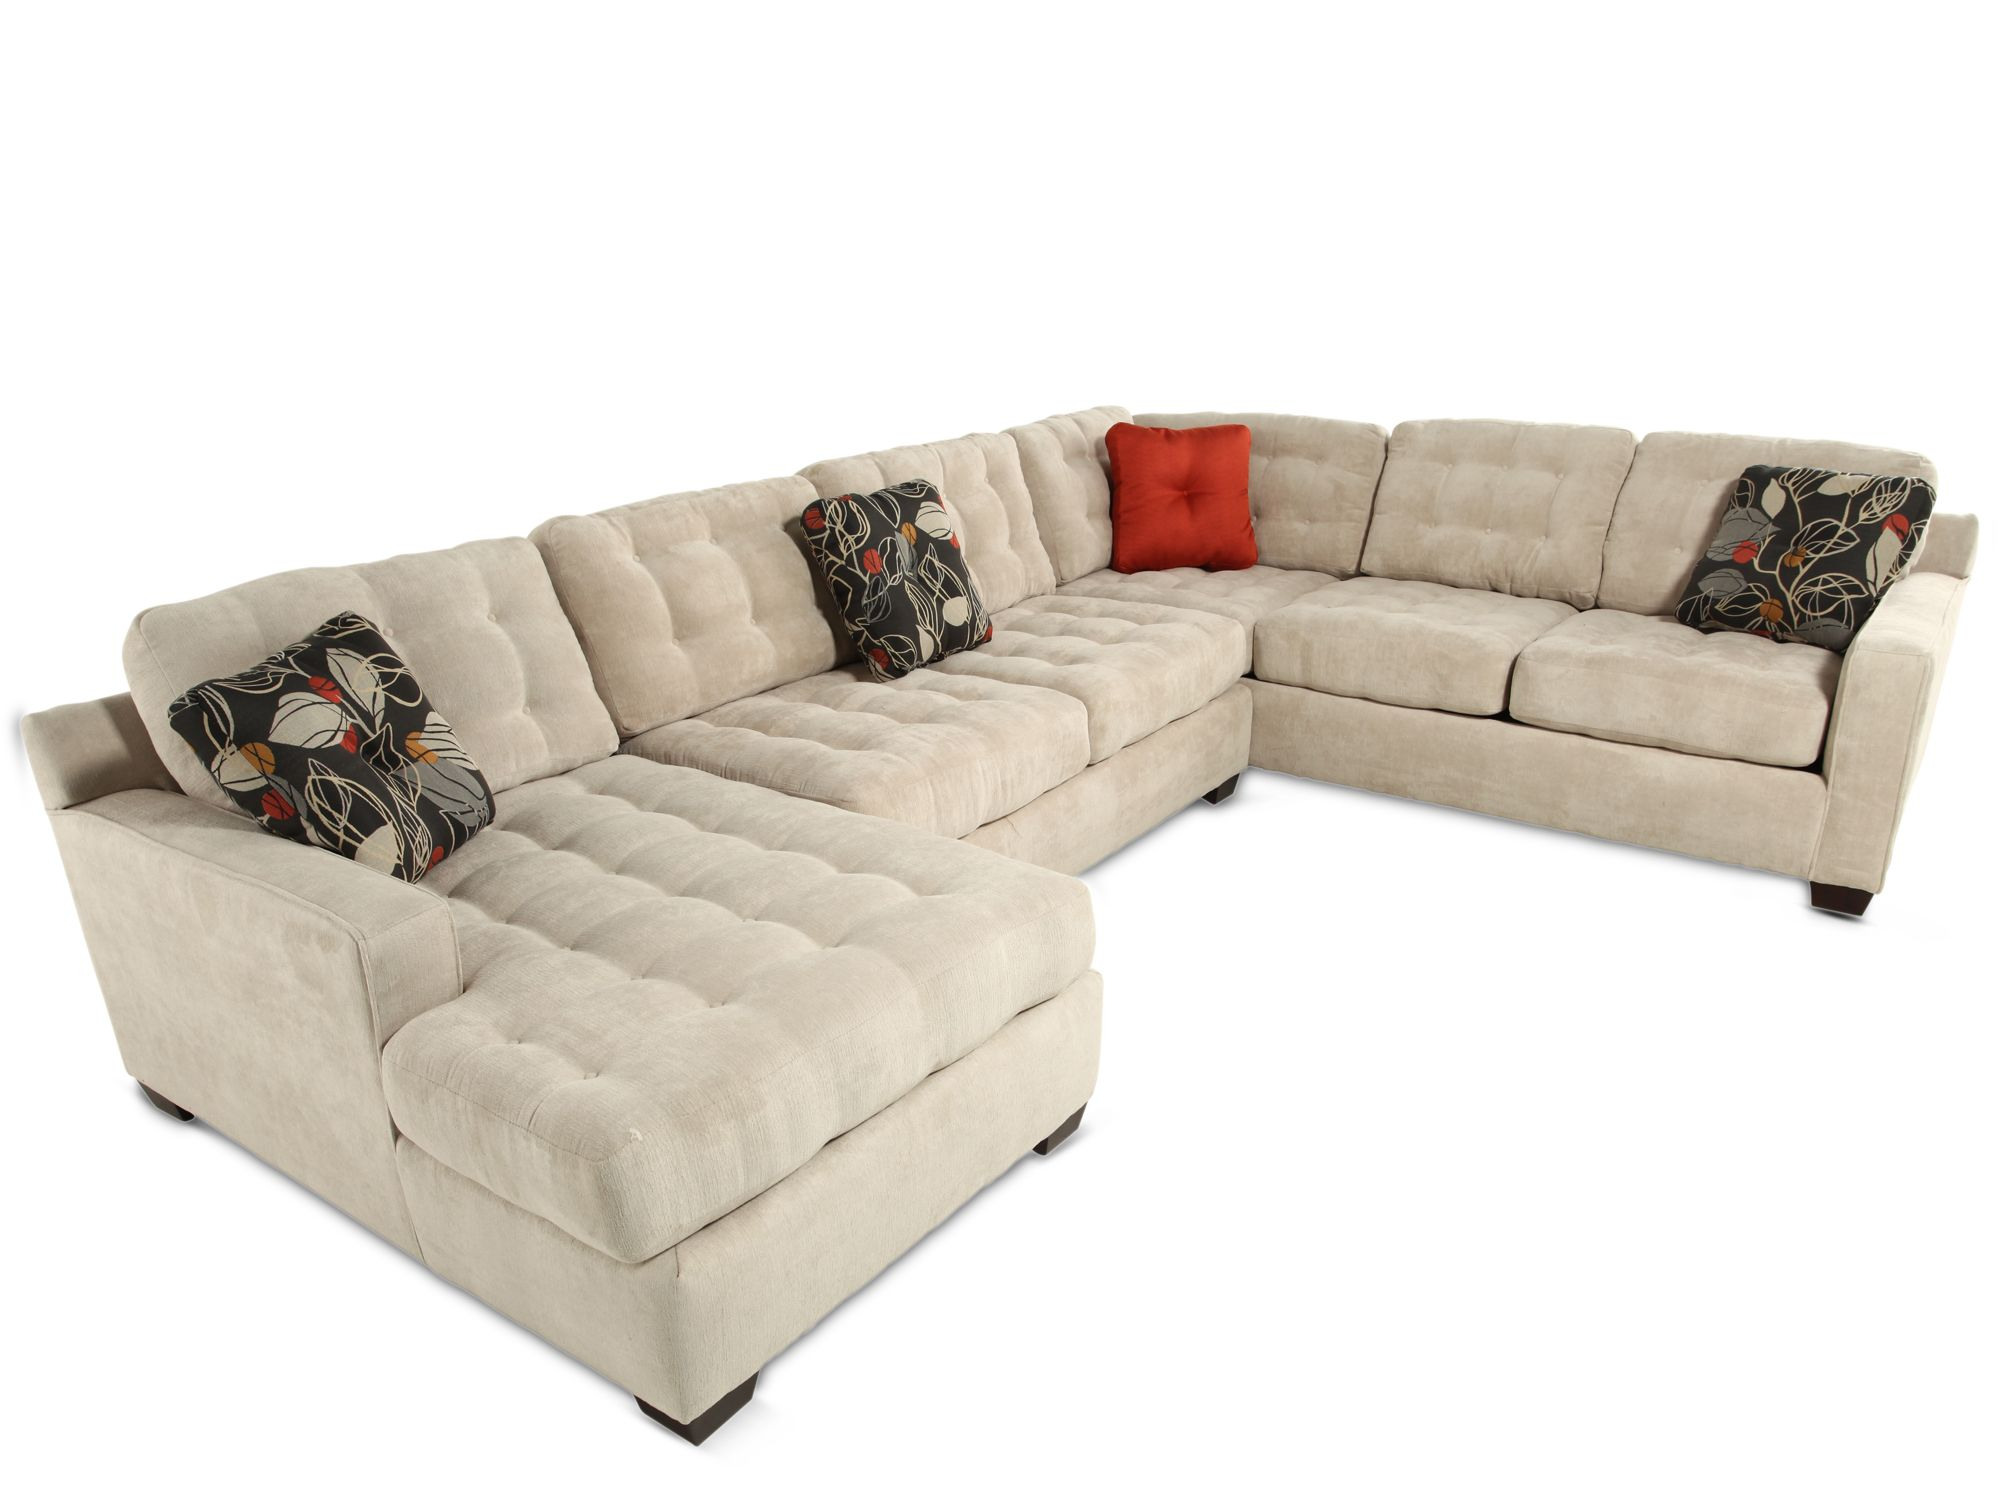 Costco Lounge Chairs | Costco Leather Sectional | Power Reclining Sectional